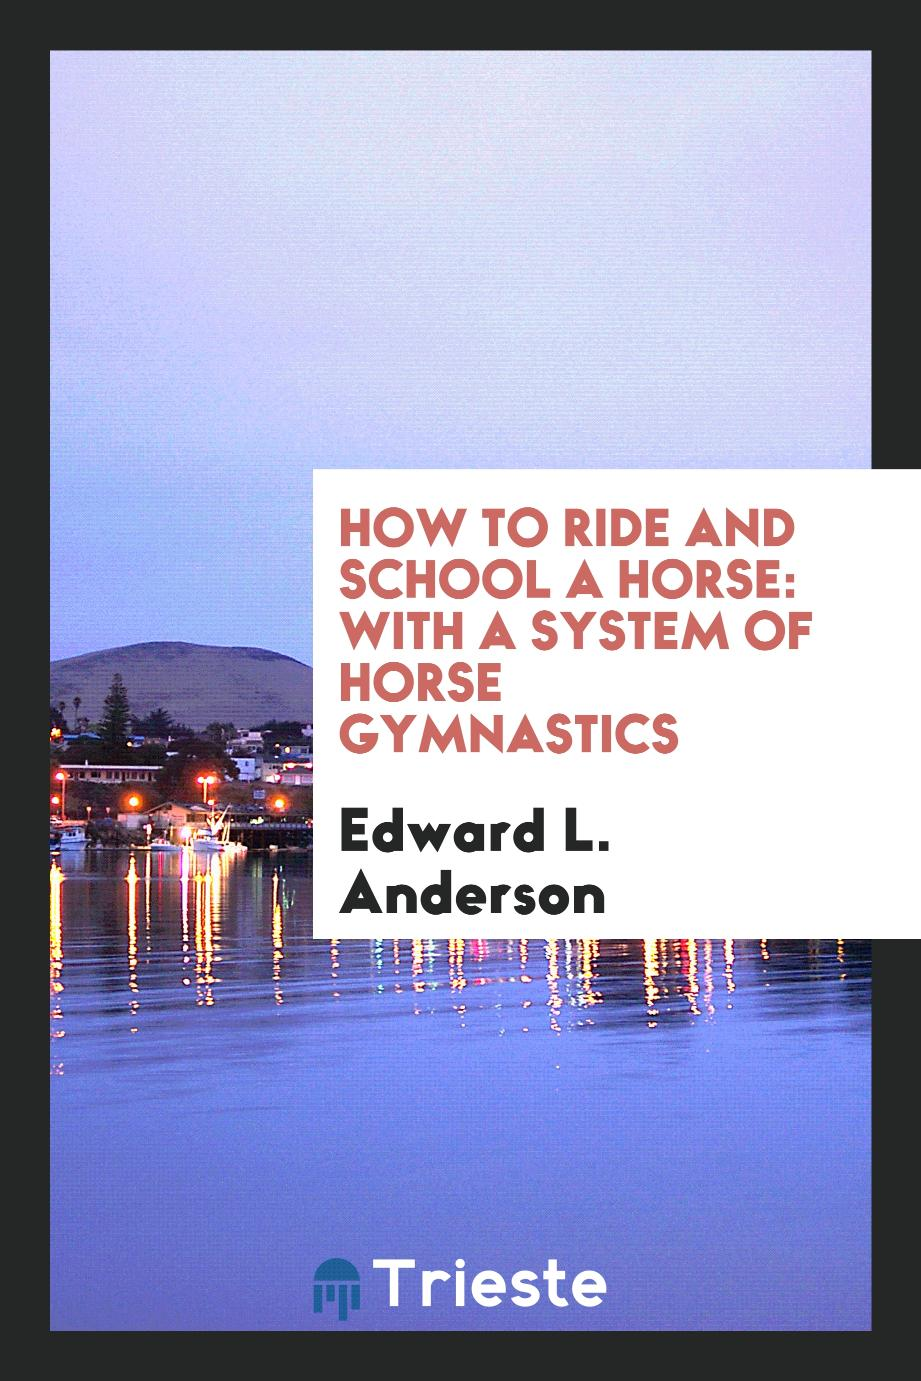 How to Ride and School a Horse: With a System of Horse Gymnastics